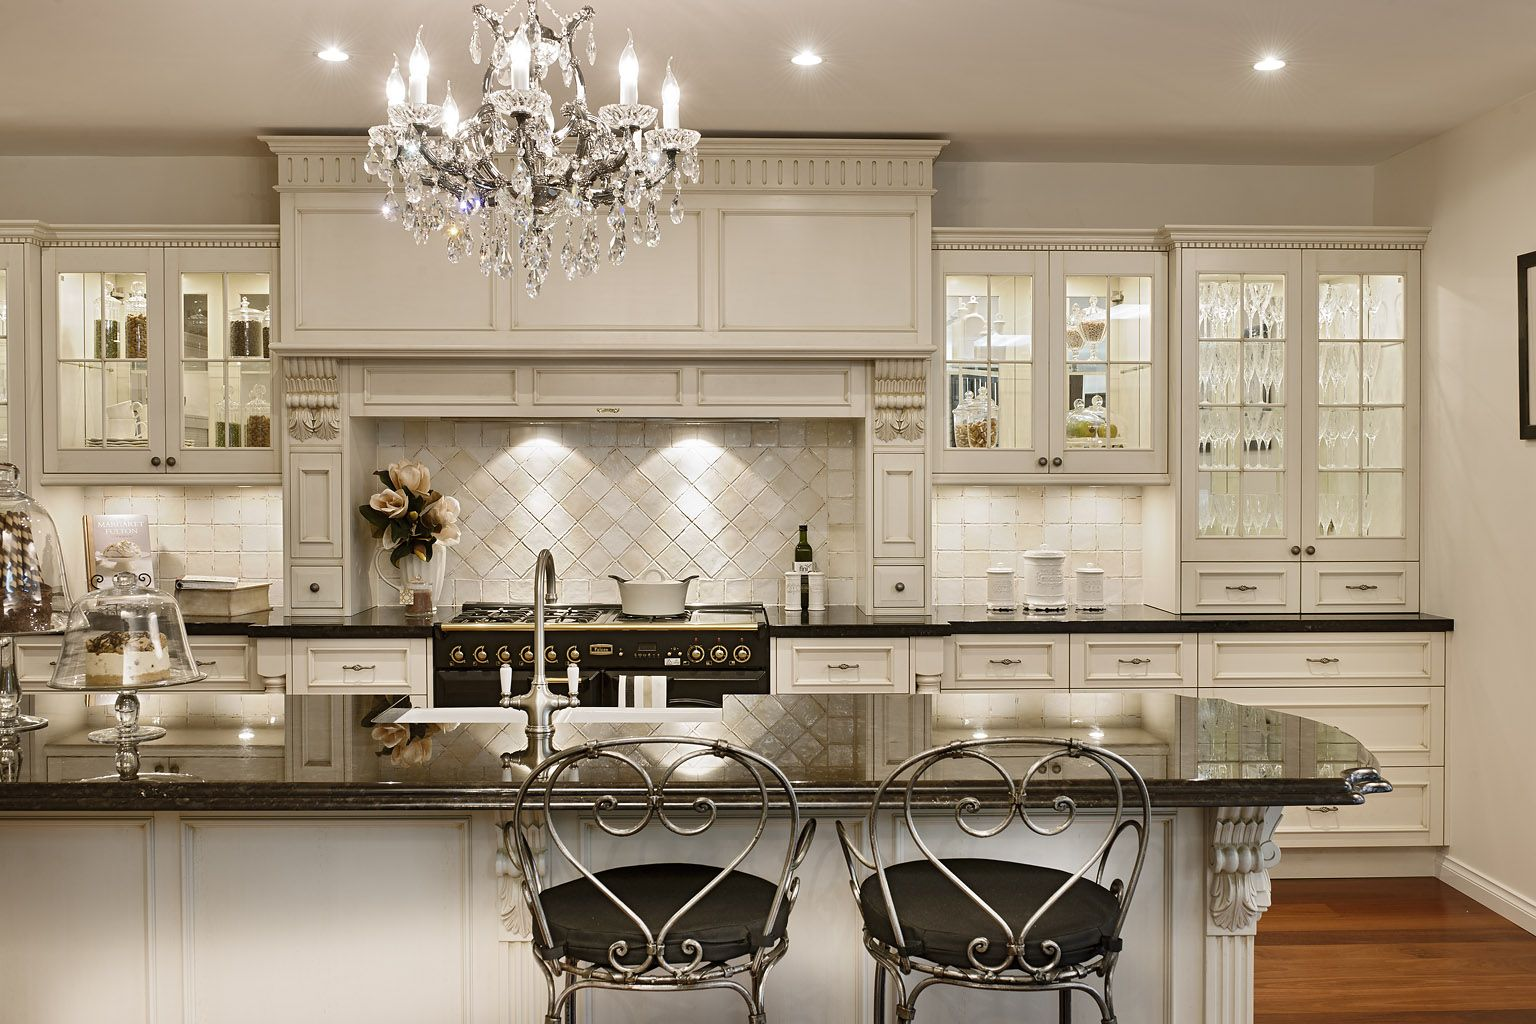 French Provincial Kitchens, kitchen Barstools - Bistro Barstools www ...